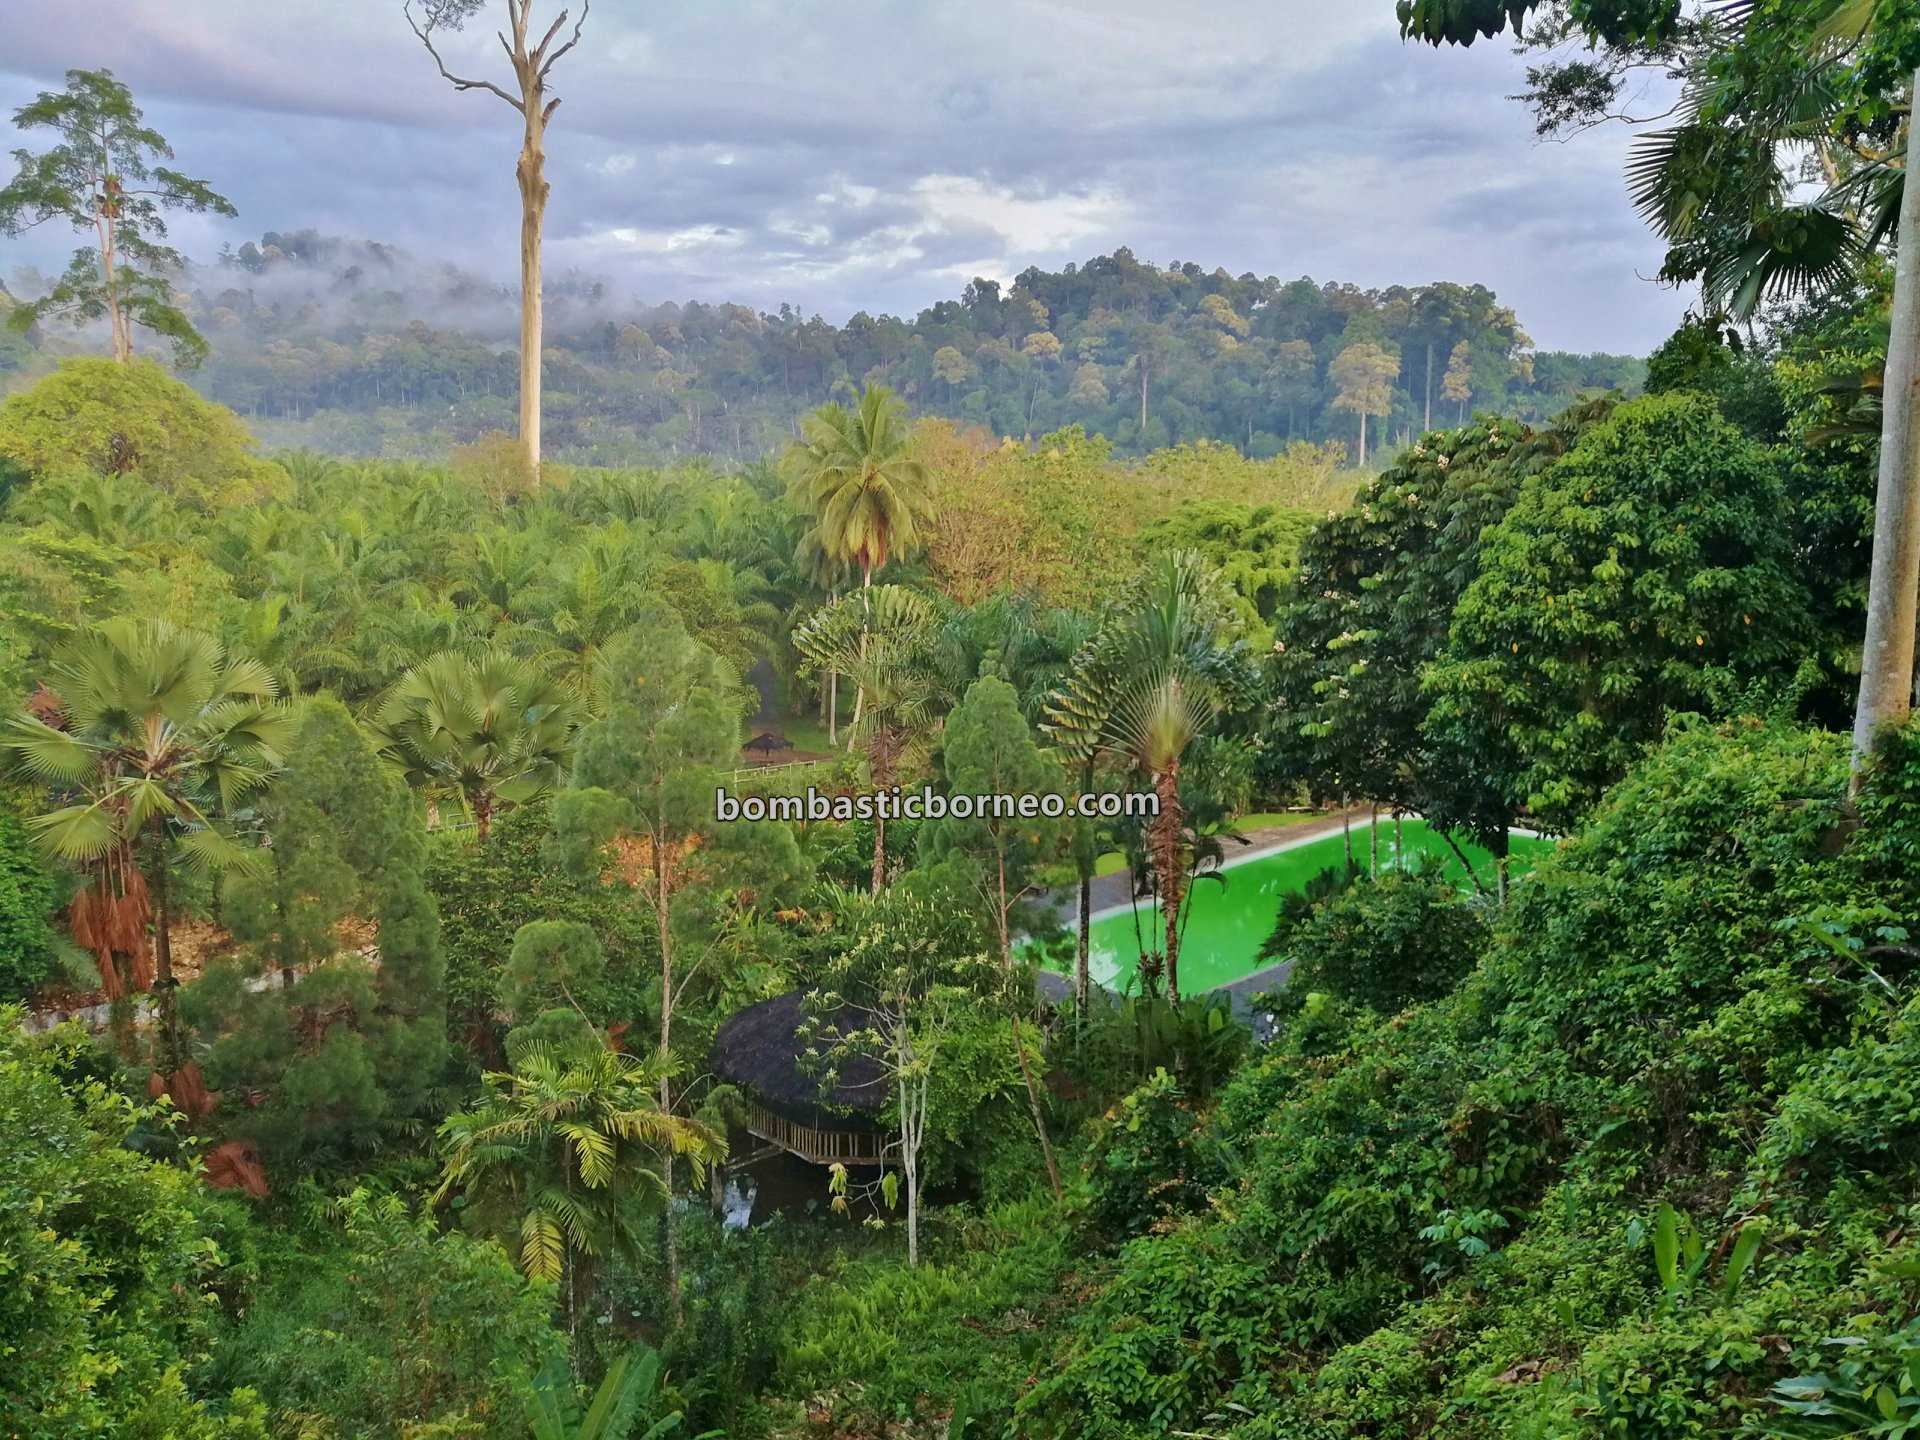 Balung River Eco Resort, accommodation, chalets, adventure, nature, outdoor, destination, exploration, recreational park, Tawau, Malaysia, Sabah, ecotourism, tourist attraction, Trans Borneo,